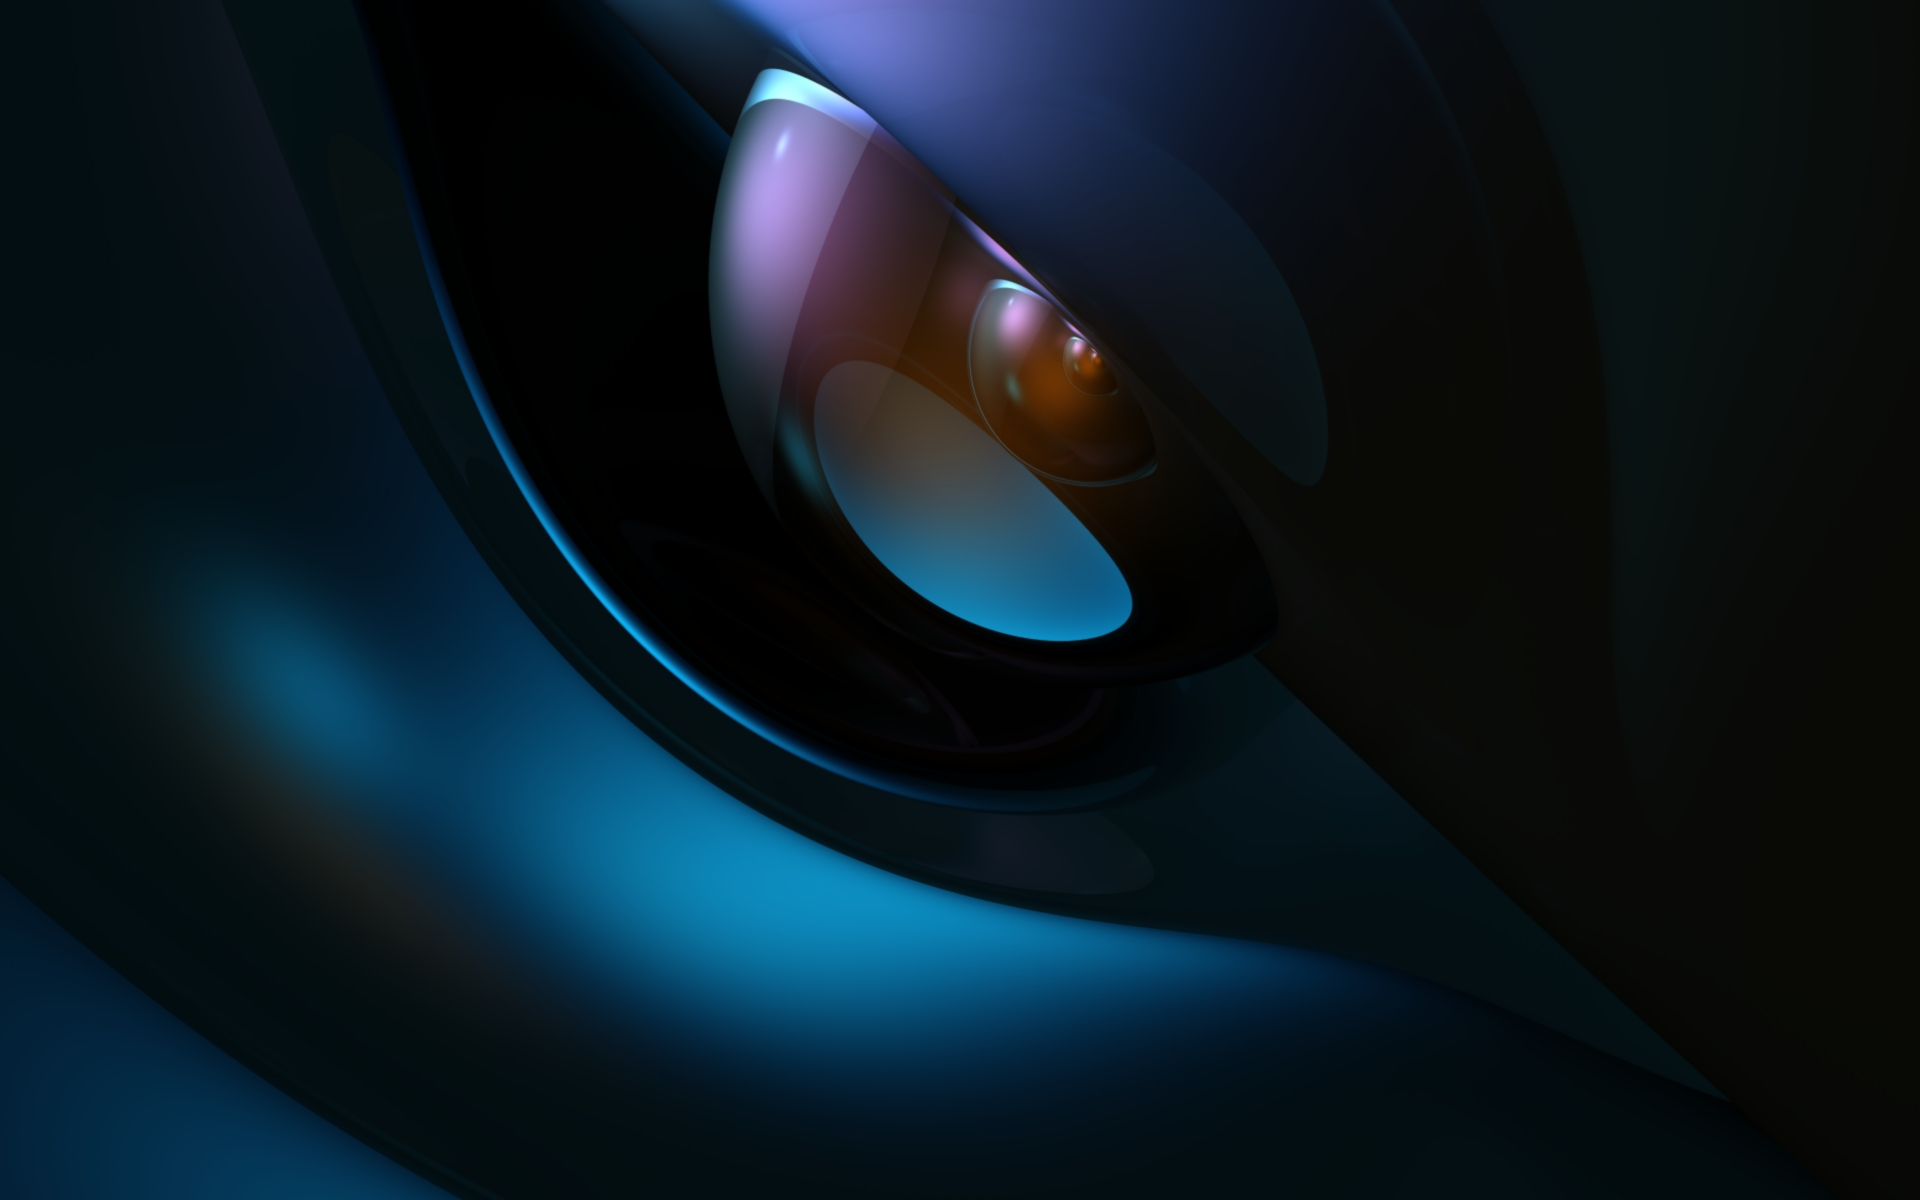 3D Pictures & Wallpapers